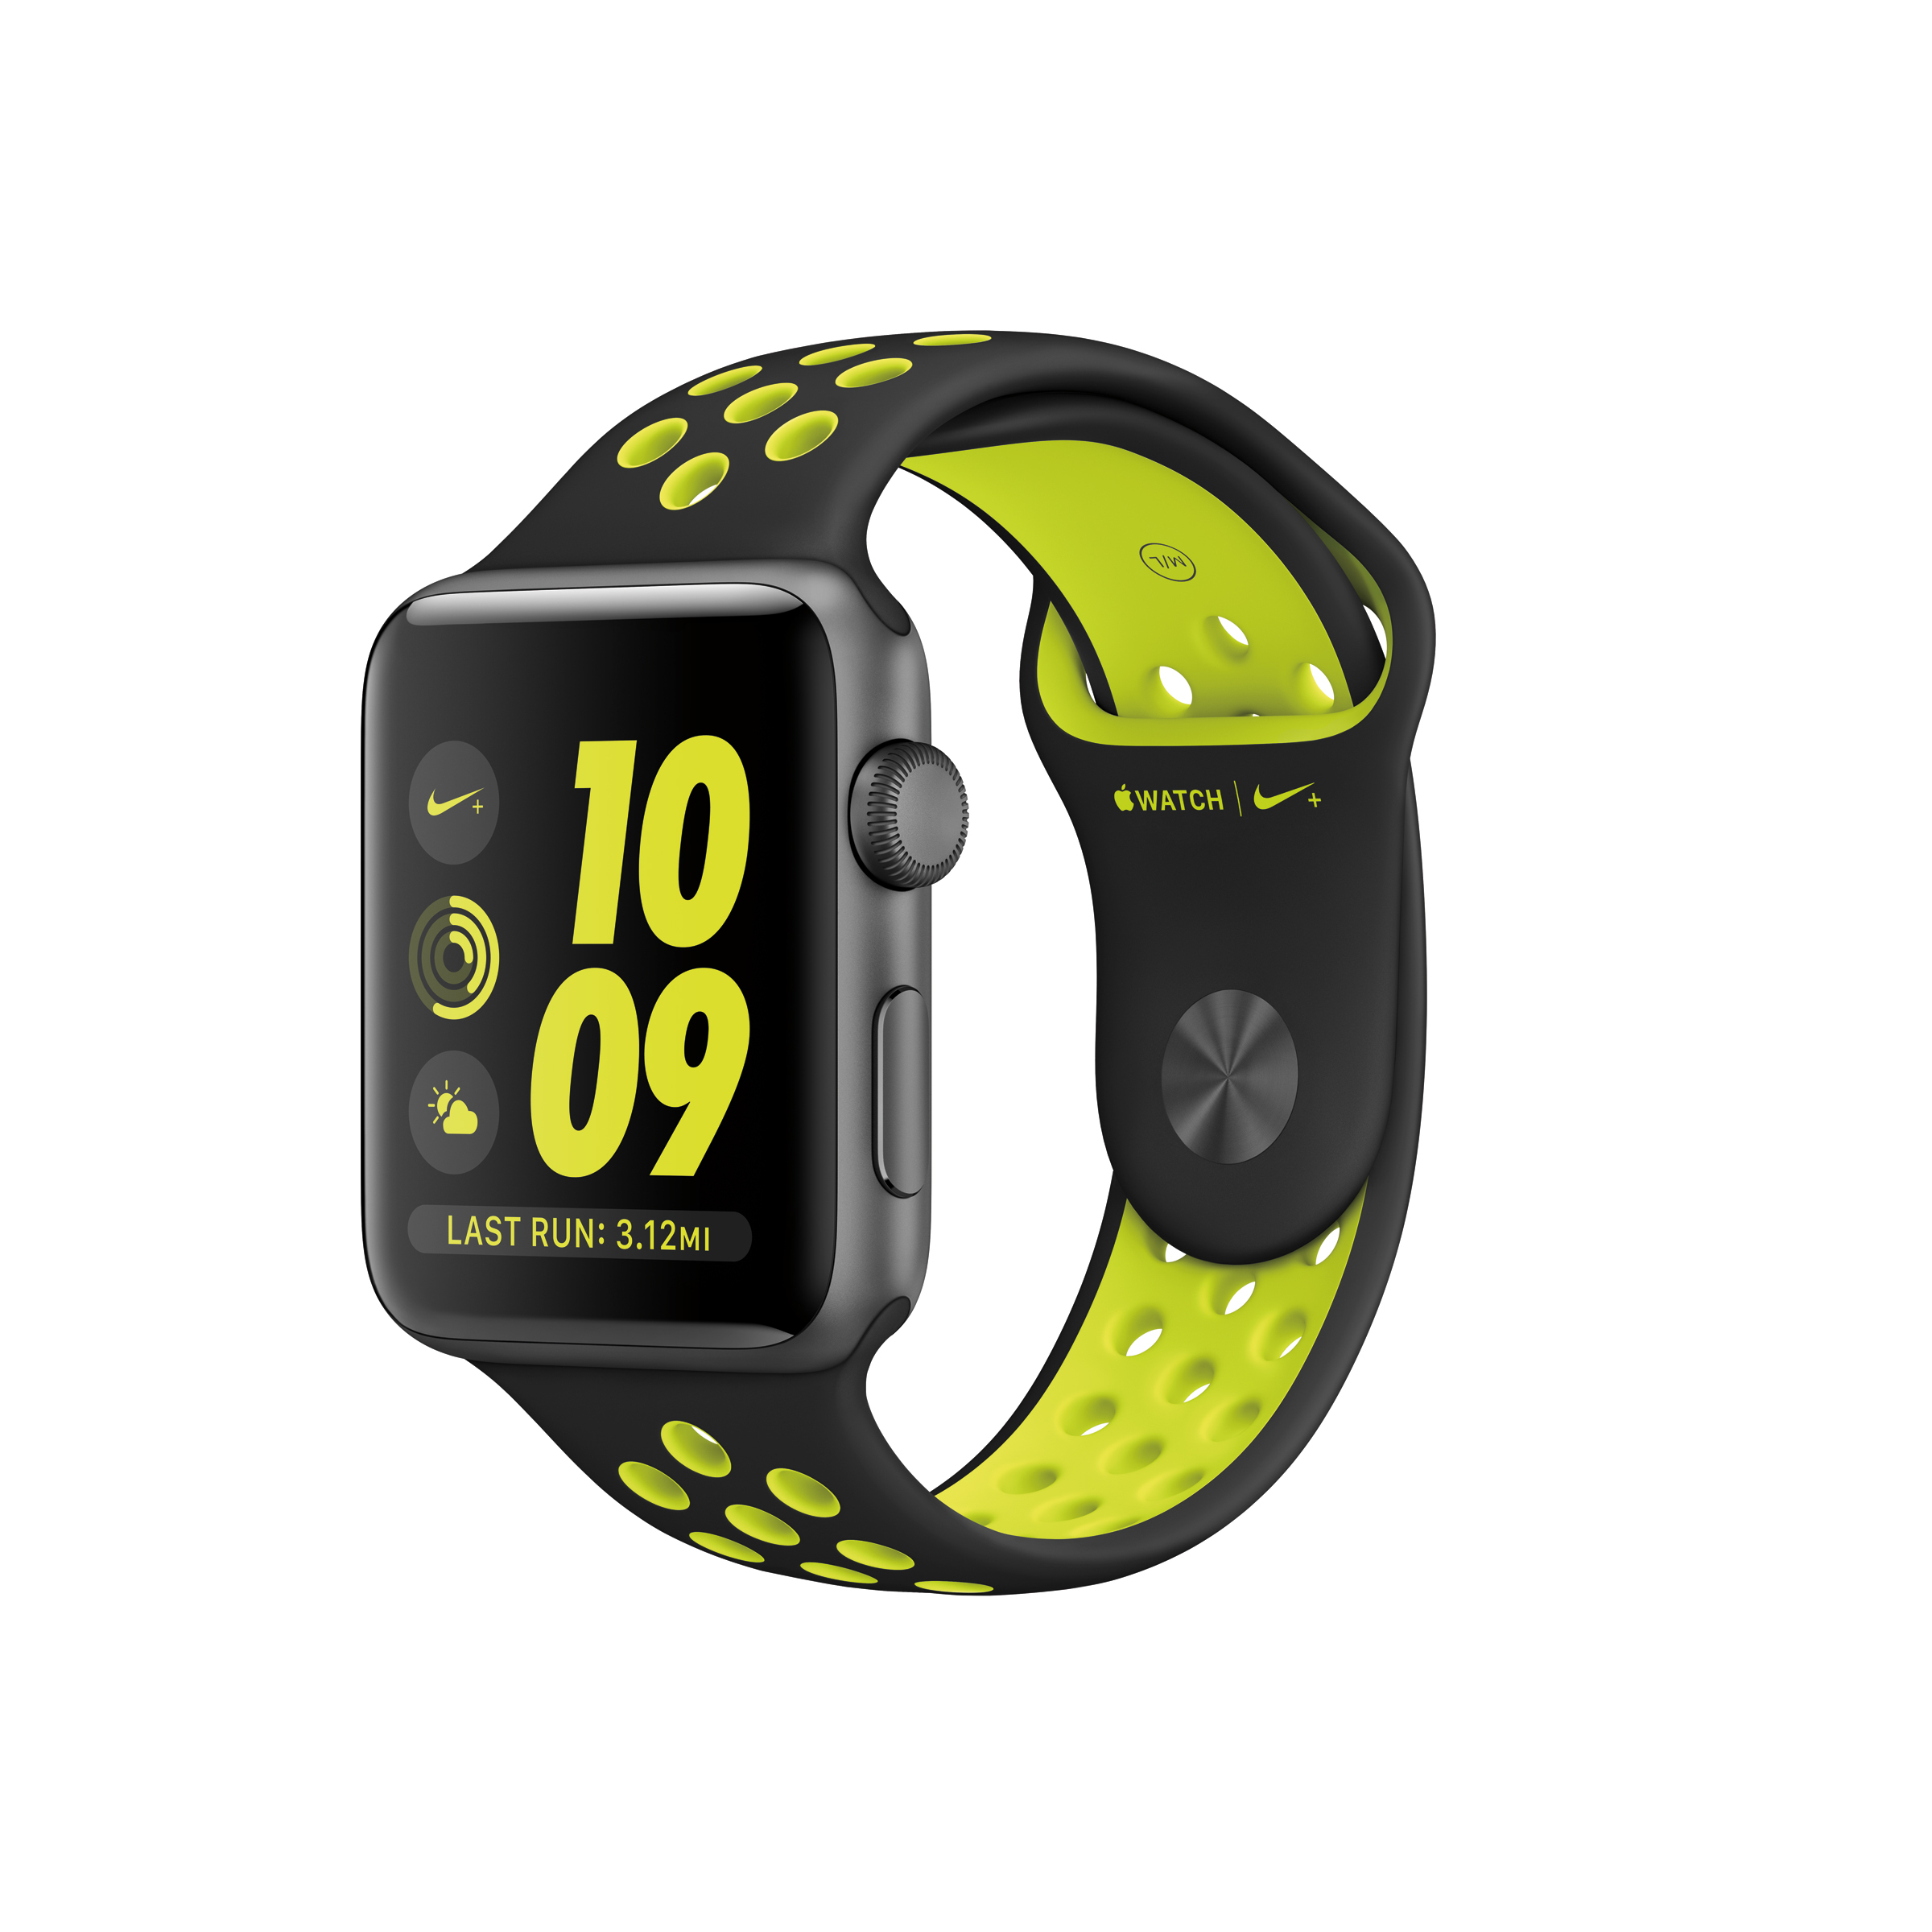 Amplia gama inflación Coherente  Apple & Nike Launch the Perfect Running Partner, Apple Watch Nike+ |  Business Wire